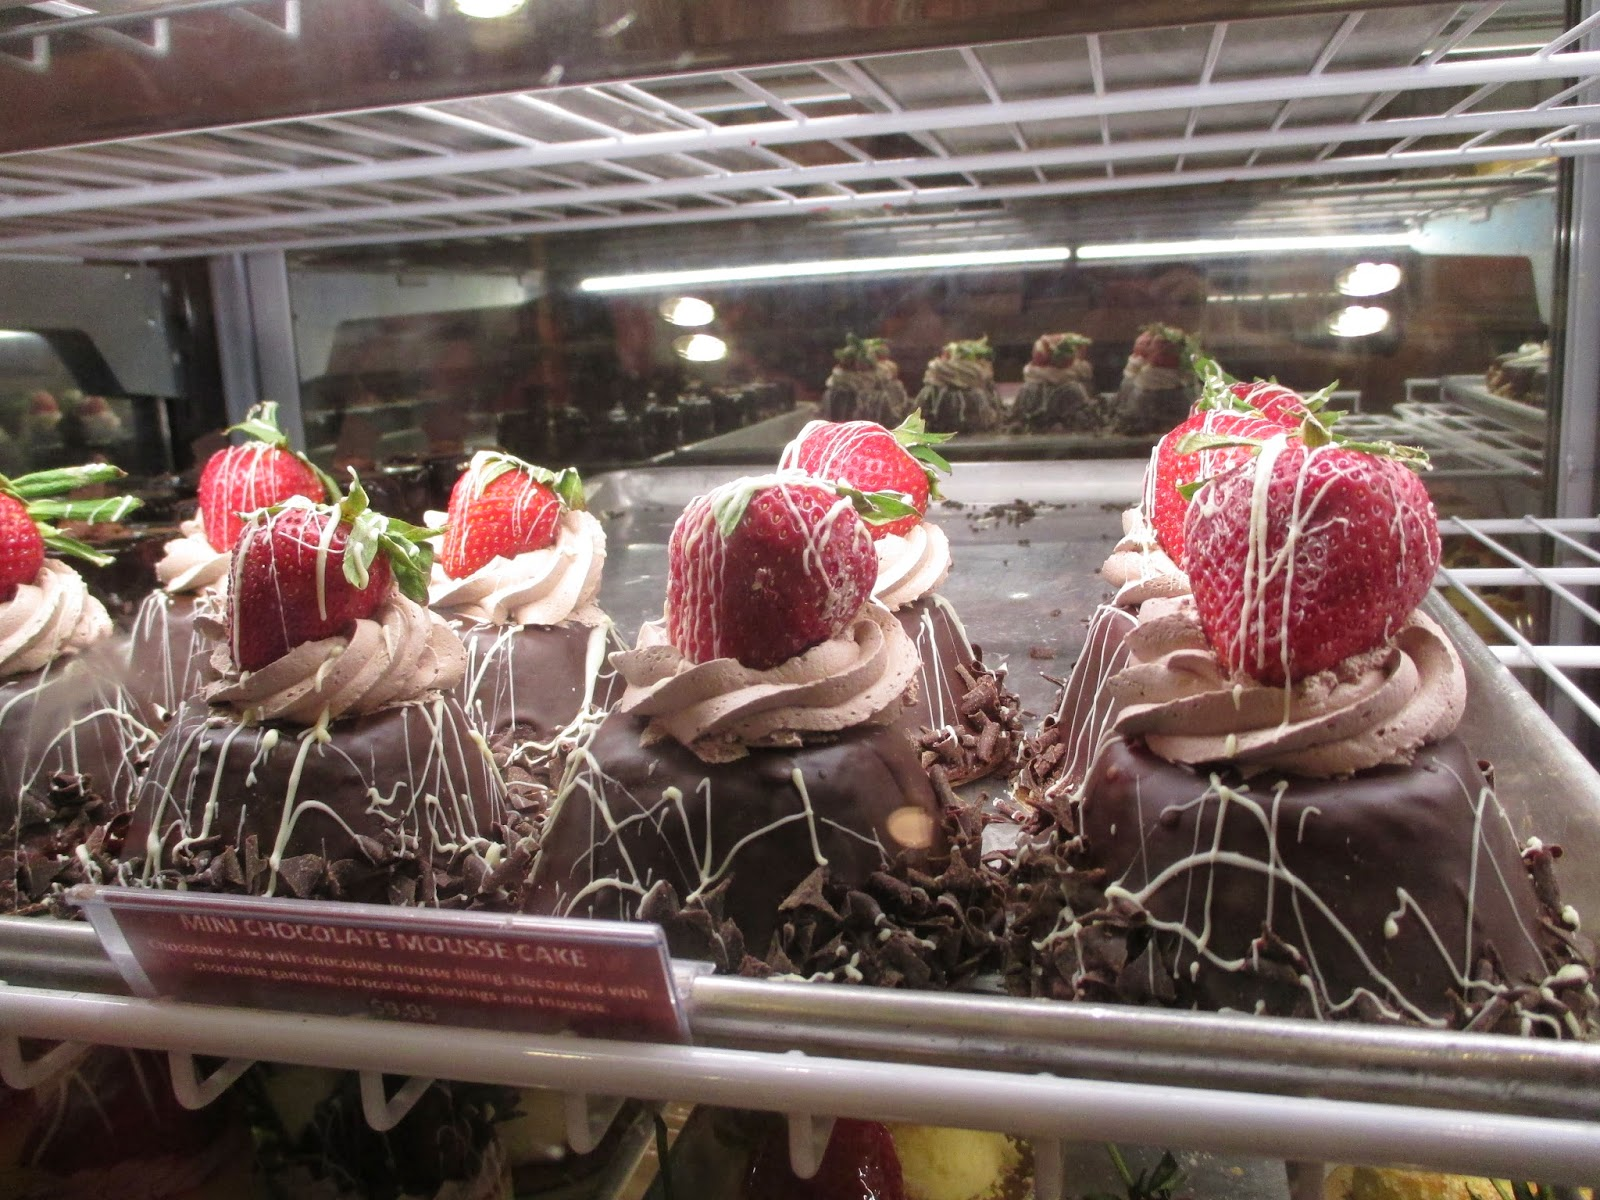 The Pastry Chef's Baking: Bakery Review: Carlo's Bakery, Las Vegas, NV